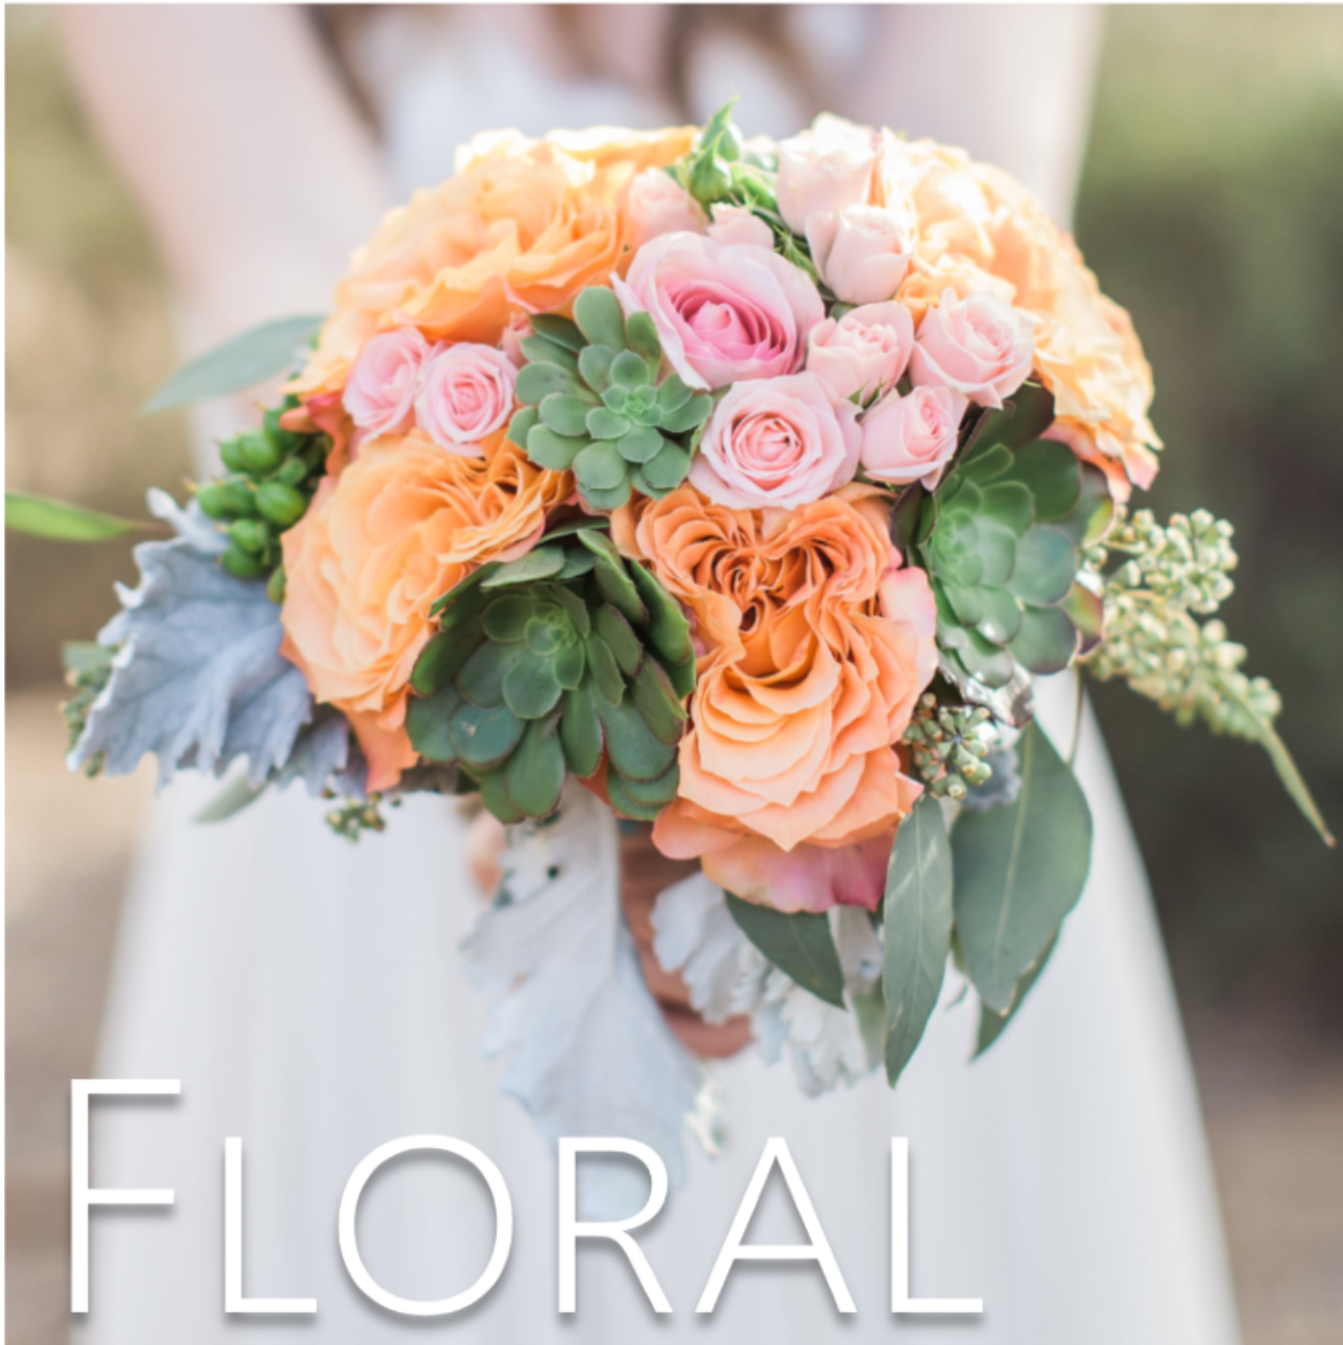 wedding florists, wedding bouquets + wedding centerpieces // the overwhelmed bride wedding blog